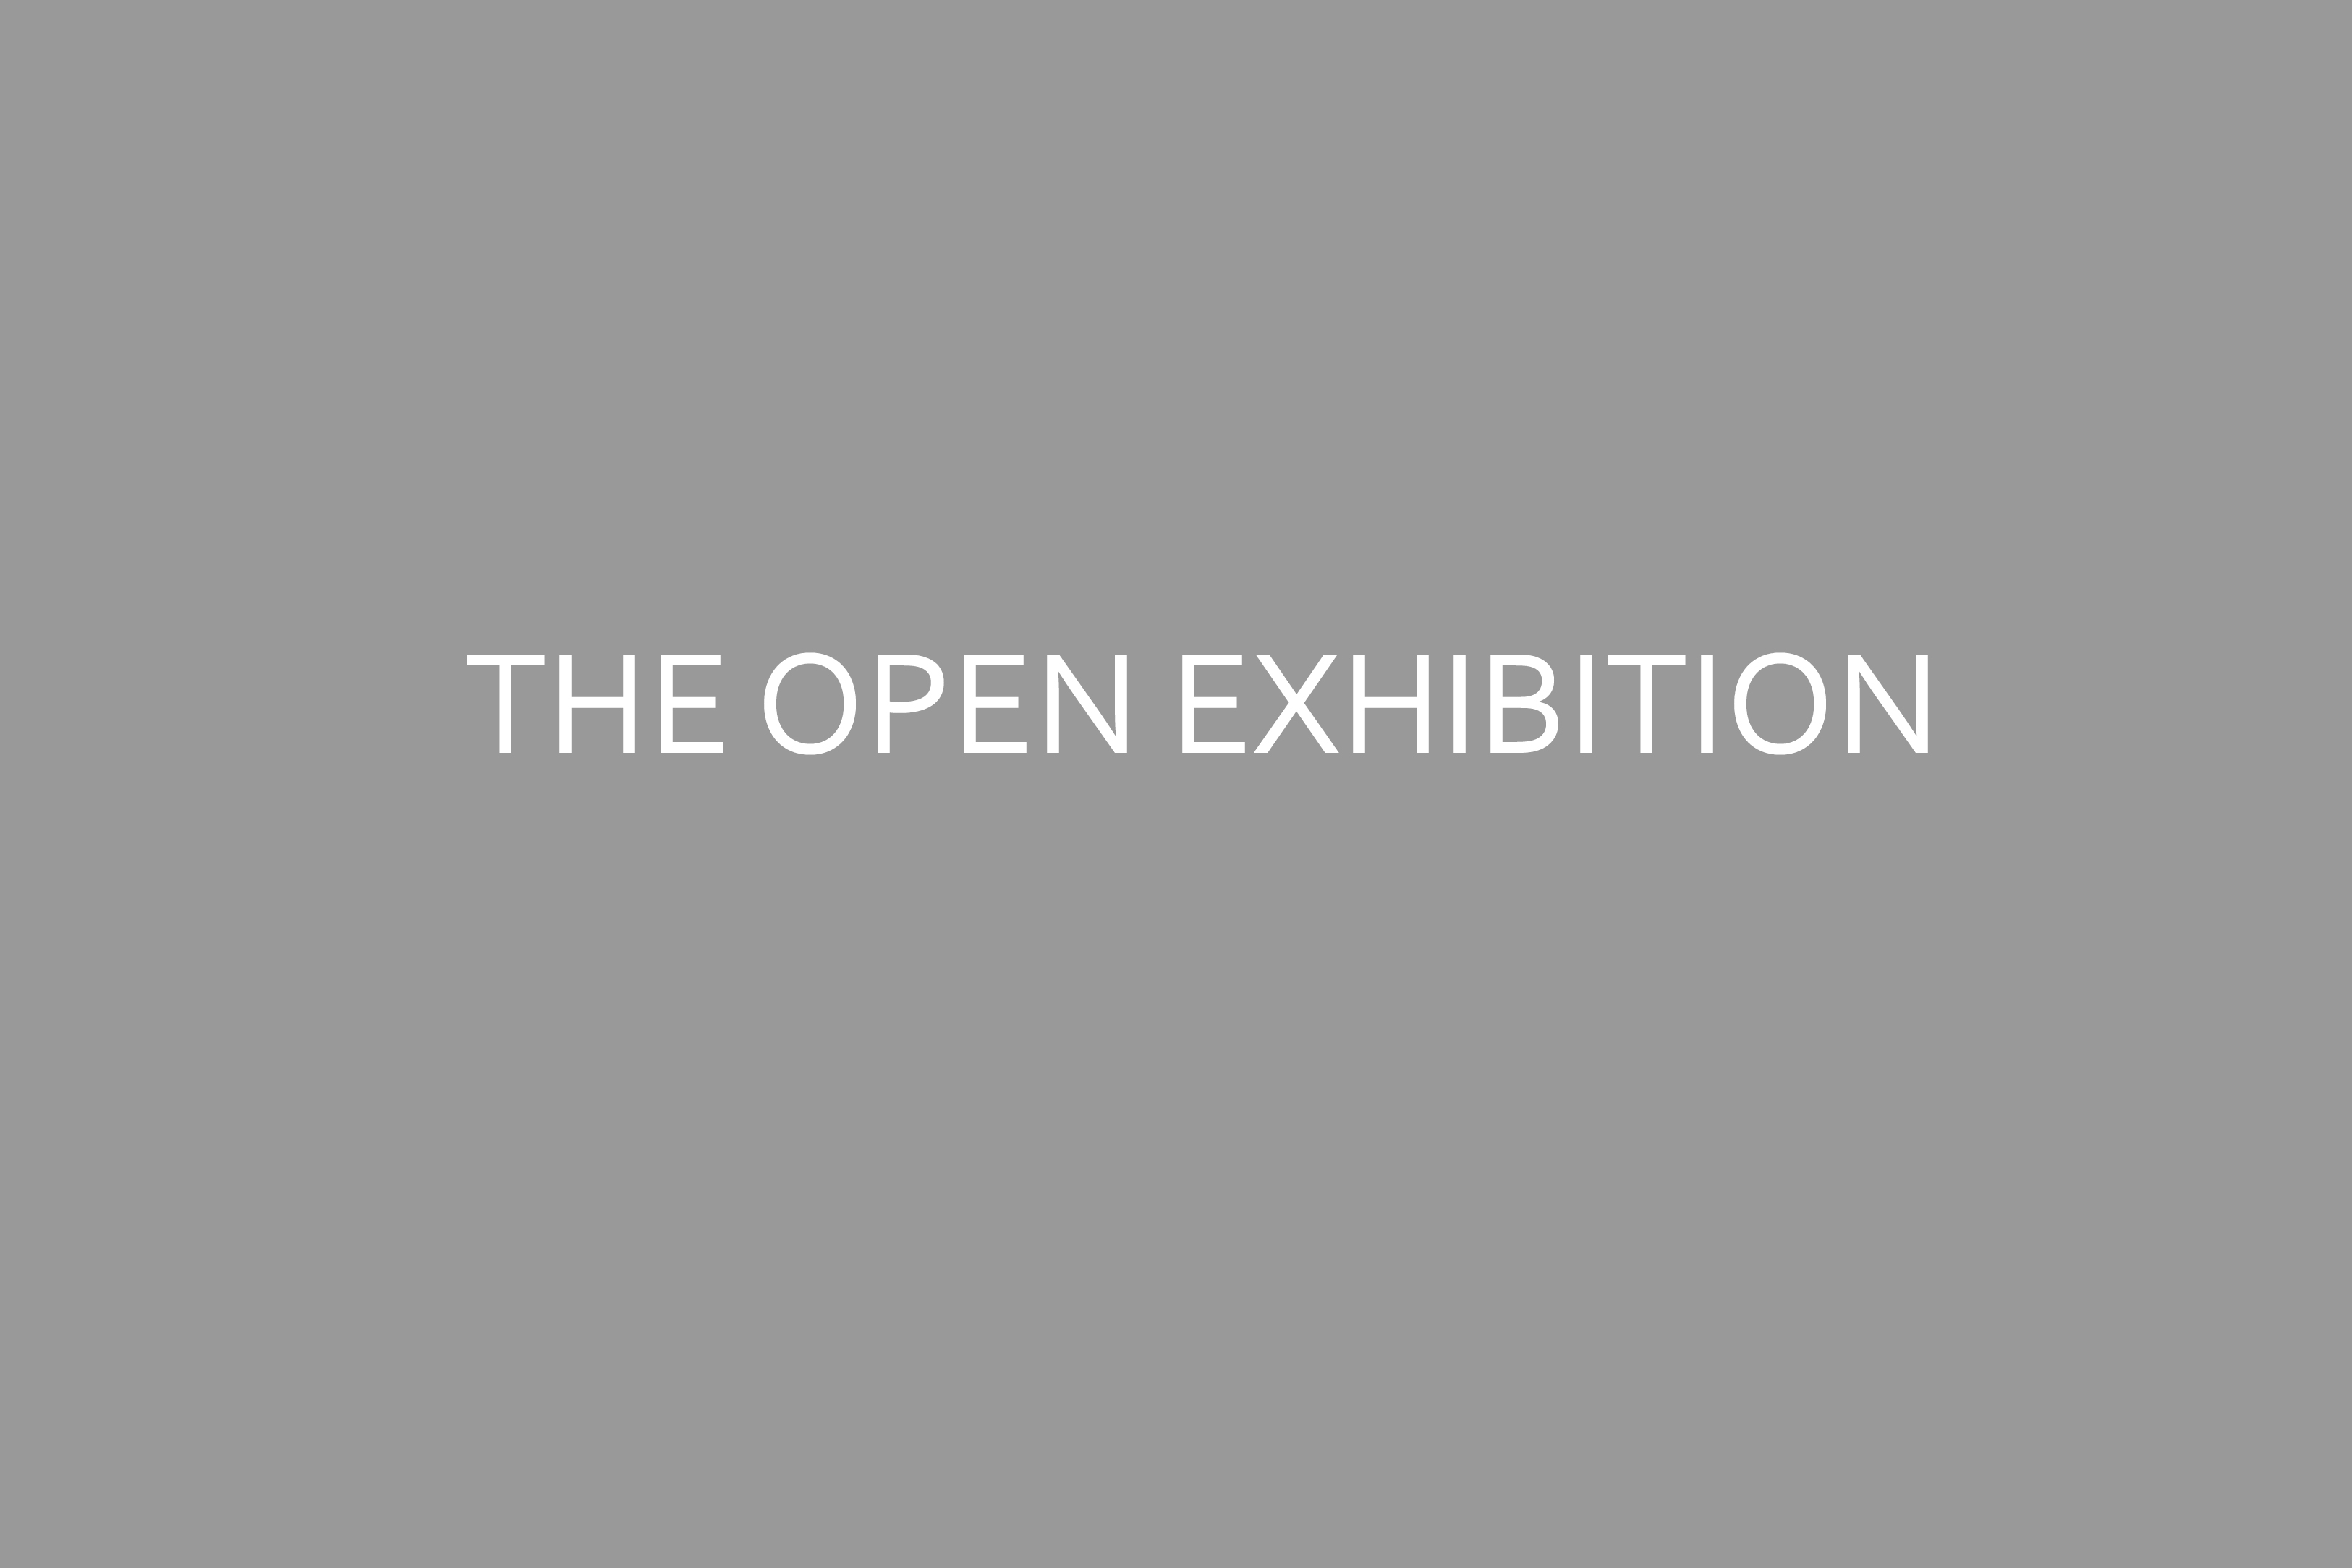 THE OPEN EXHIBITION